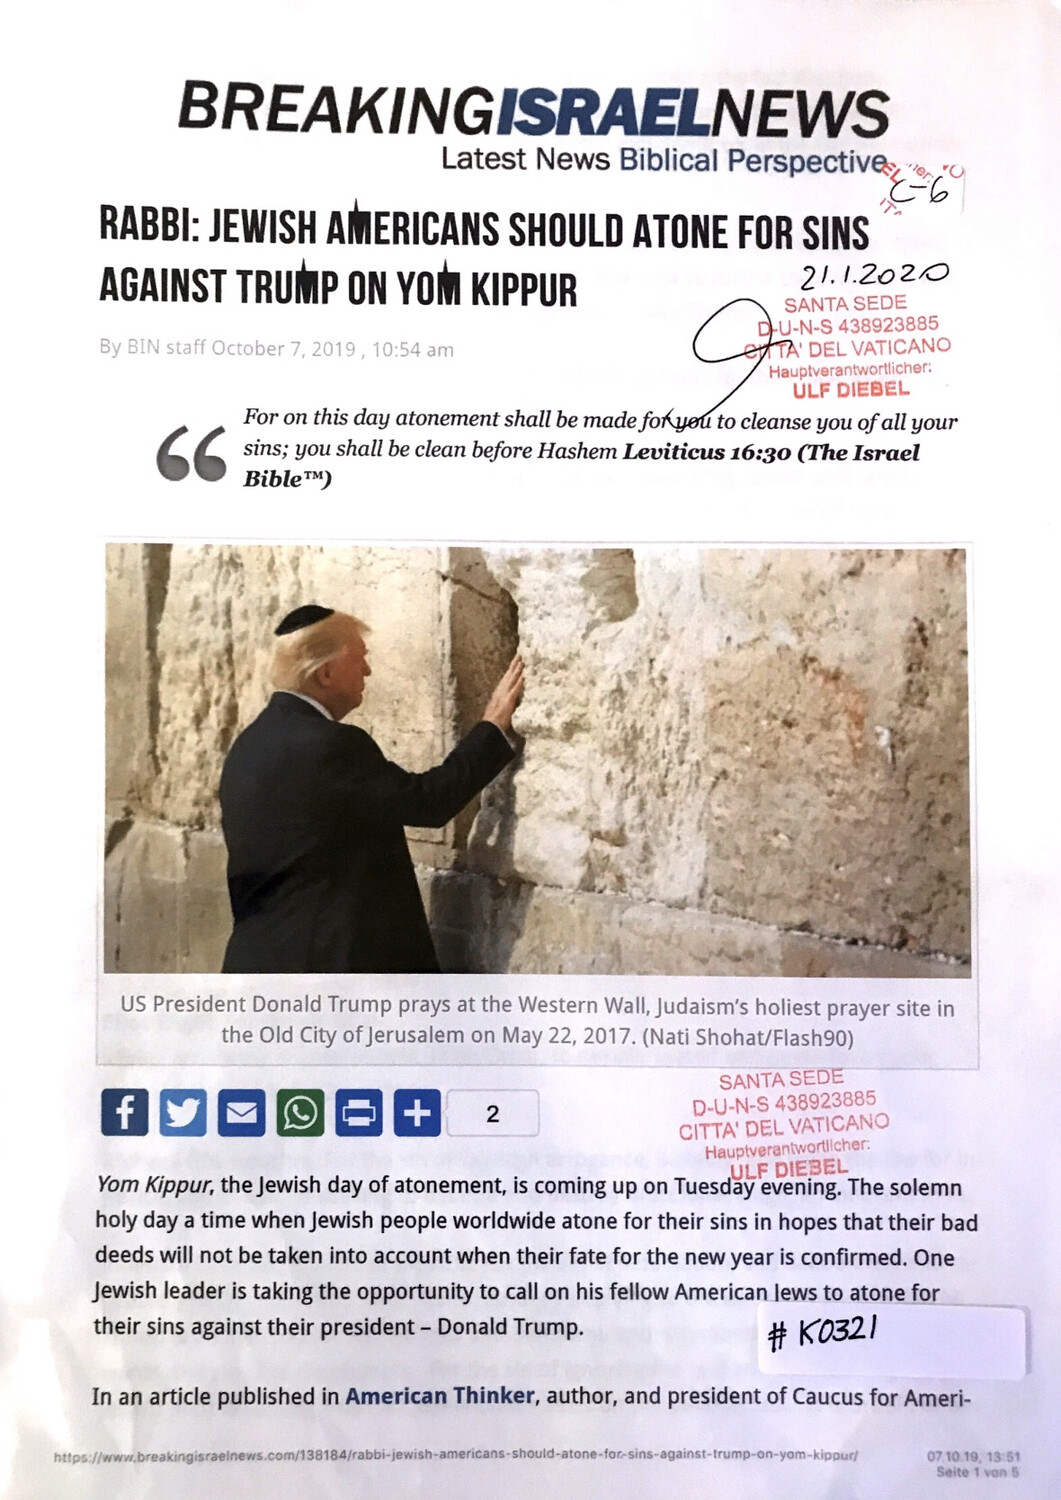 #K0321 l Breaking Israel News - Rabbi: Jewish Americans should atone for sins against Trump on Yom Kippur